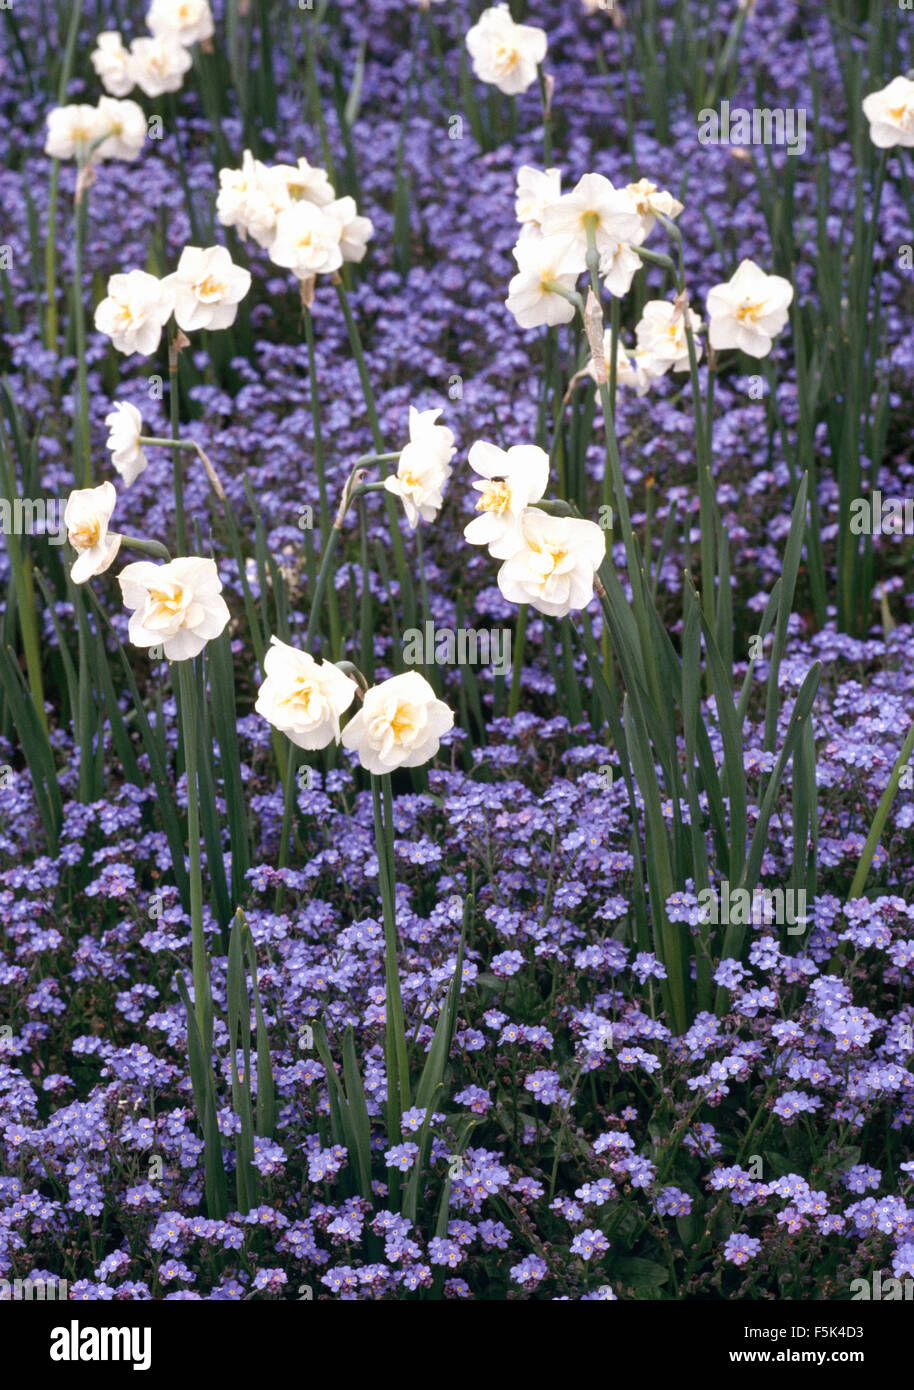 Close-up of Narcissus 'Cheerfulness' under-planted with blue forget-me-nots - Stock Image